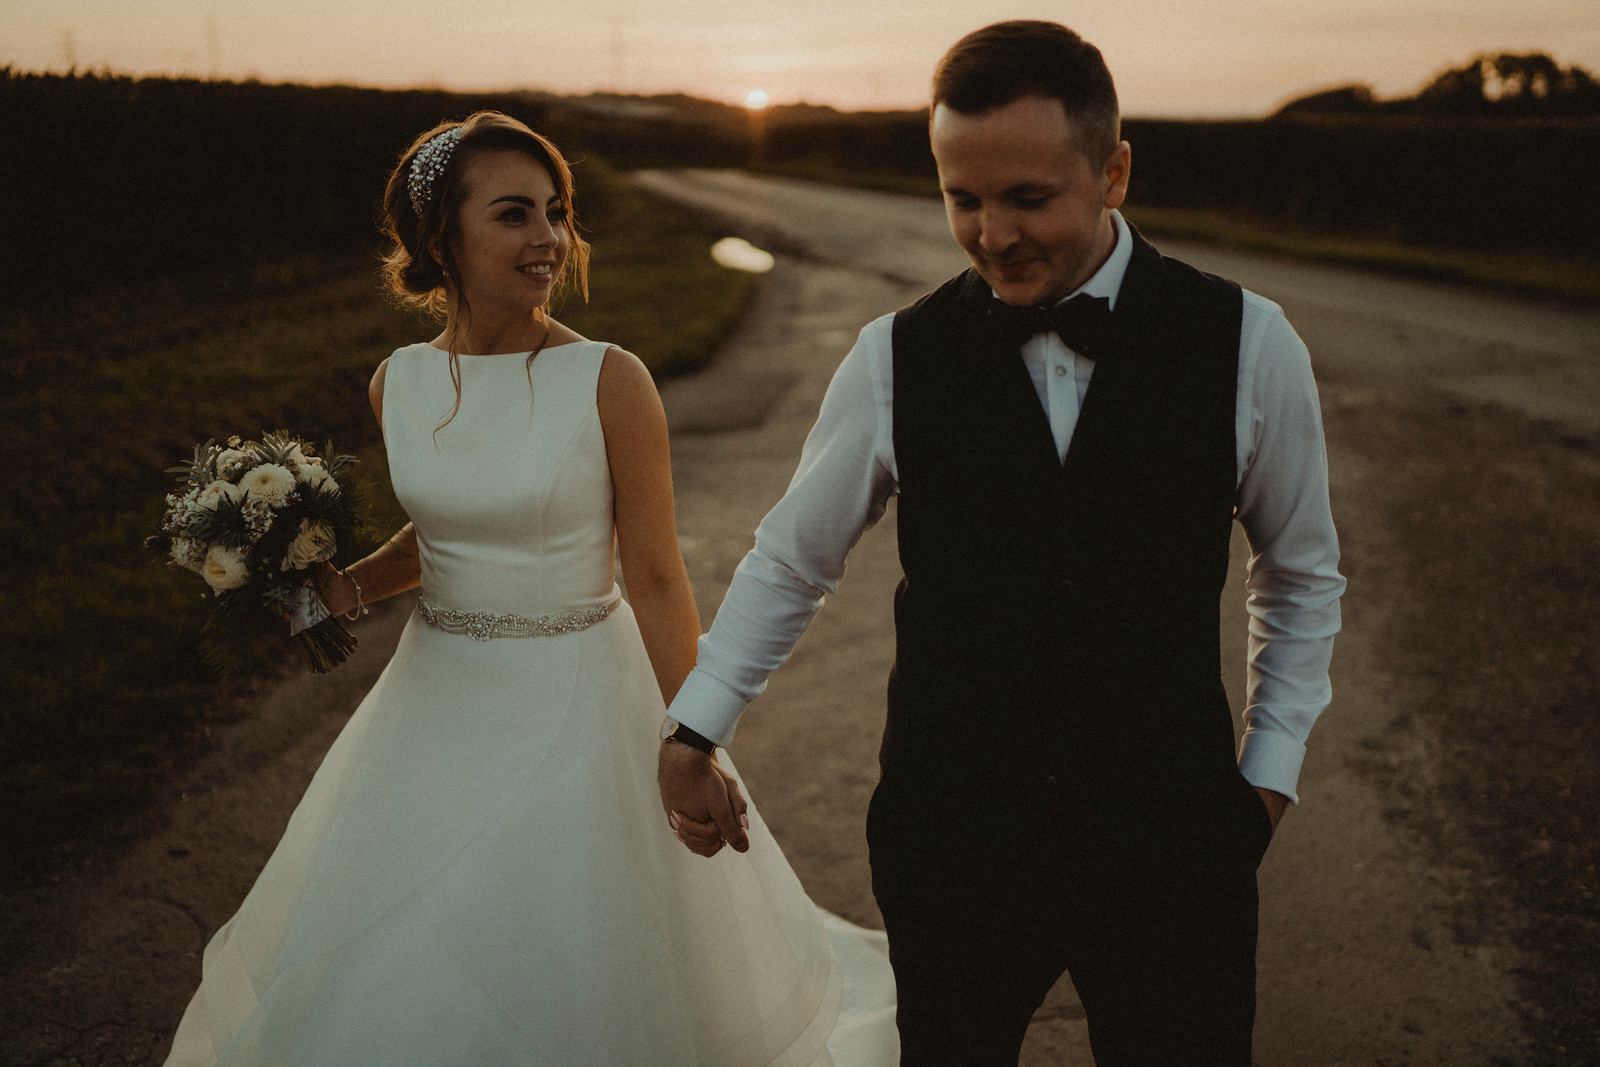 Bride and groom hold hands as they walk down the country road